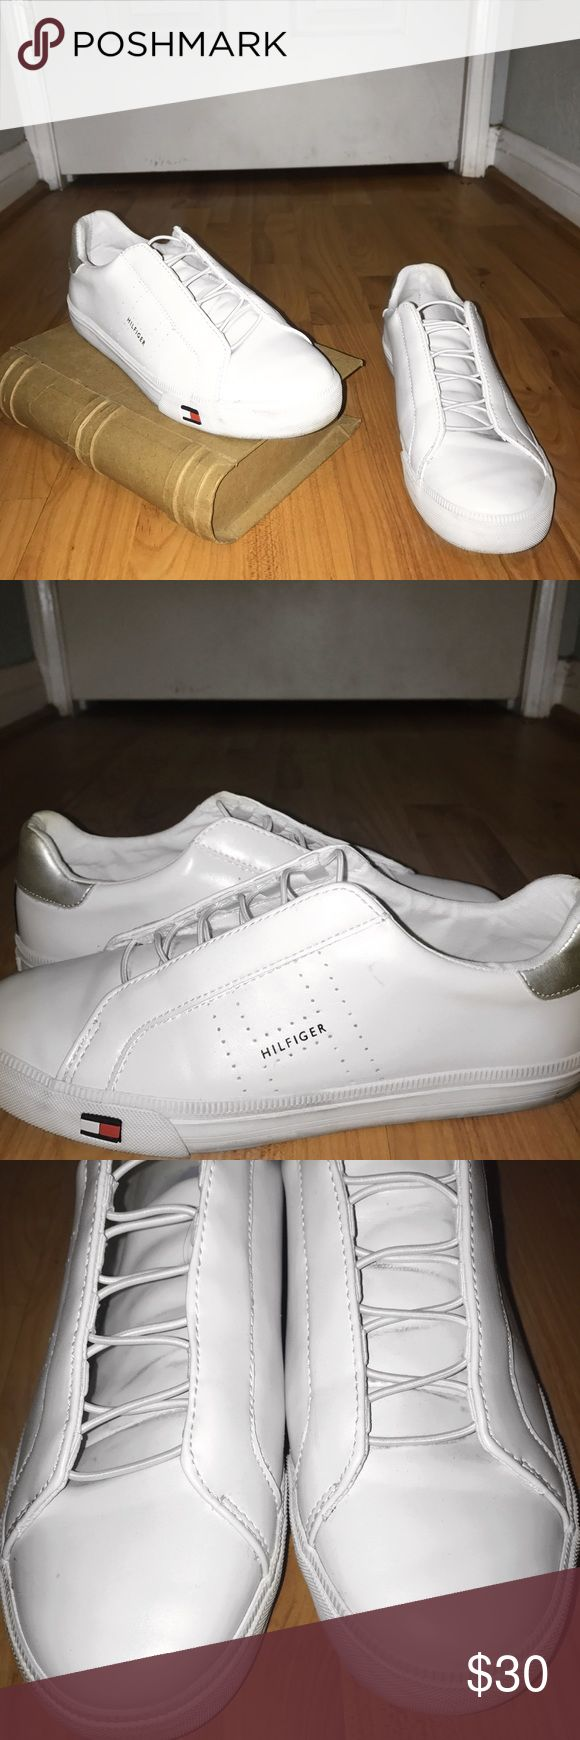 """tommy hilfiger sneakers white Description: authentic white tommy hilfiger sneakers. tiny flag on side. """"tommy hilfiger"""" written on the side and inside.   🖤make an offer, price negotiable🖤 🇺🇸comes with free Brandy Melville sticker 👅bundle to get a free bead bracelet ✨15% off bundle of two or more Tommy Hilfiger Shoes Sneakers"""